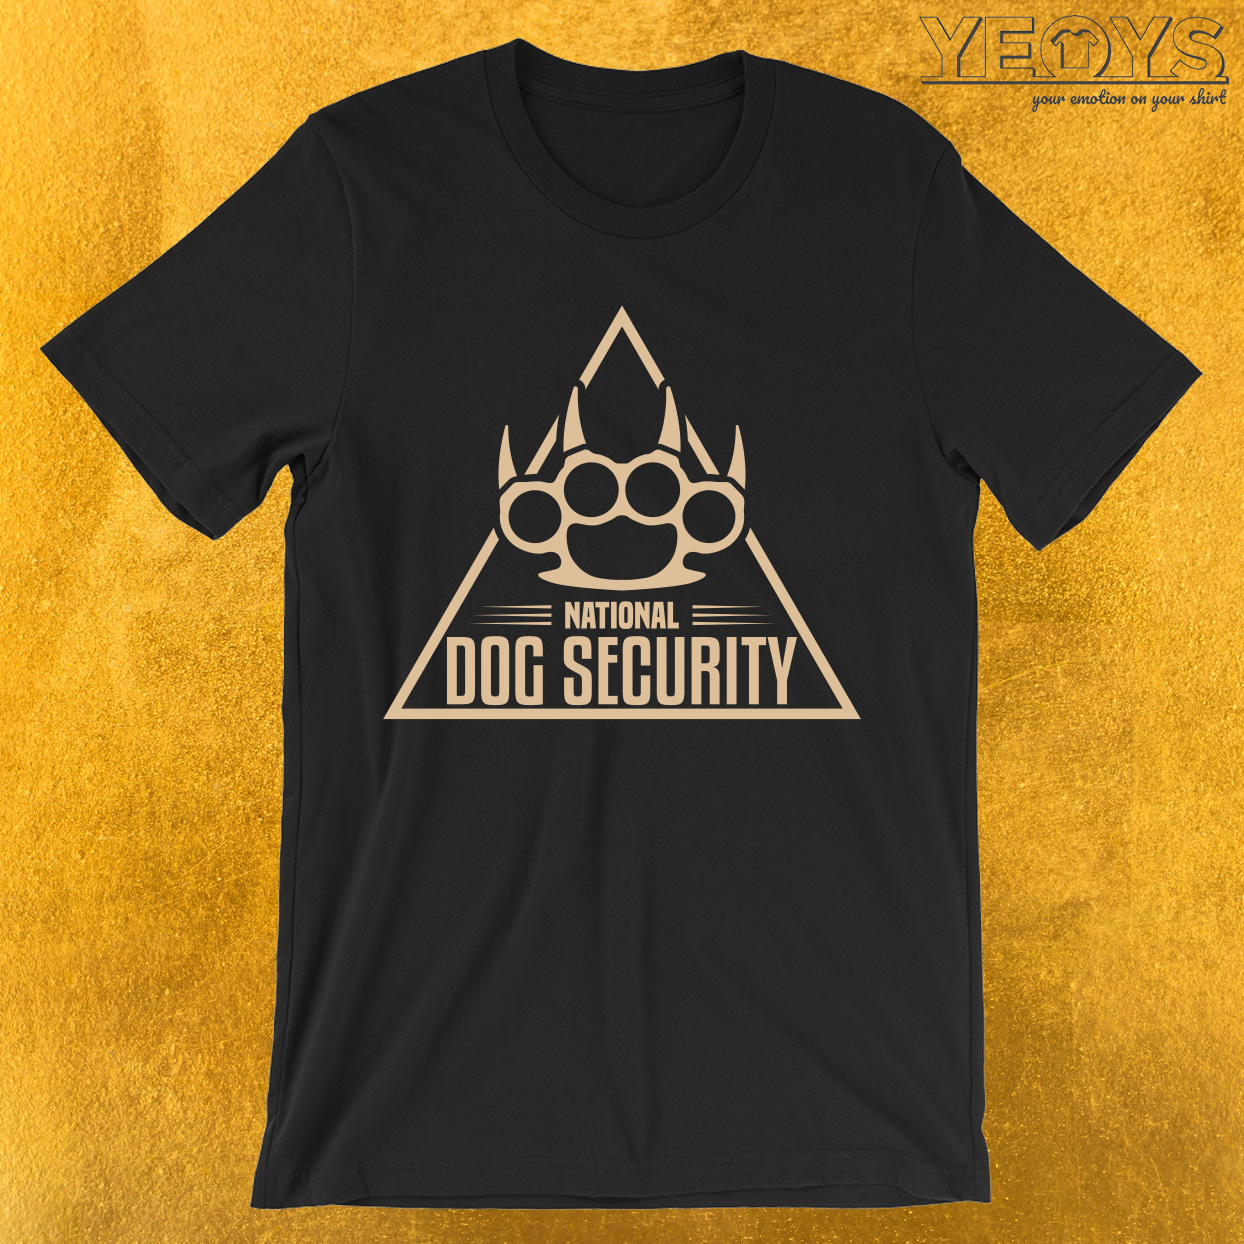 National Dog Security T-Shirt